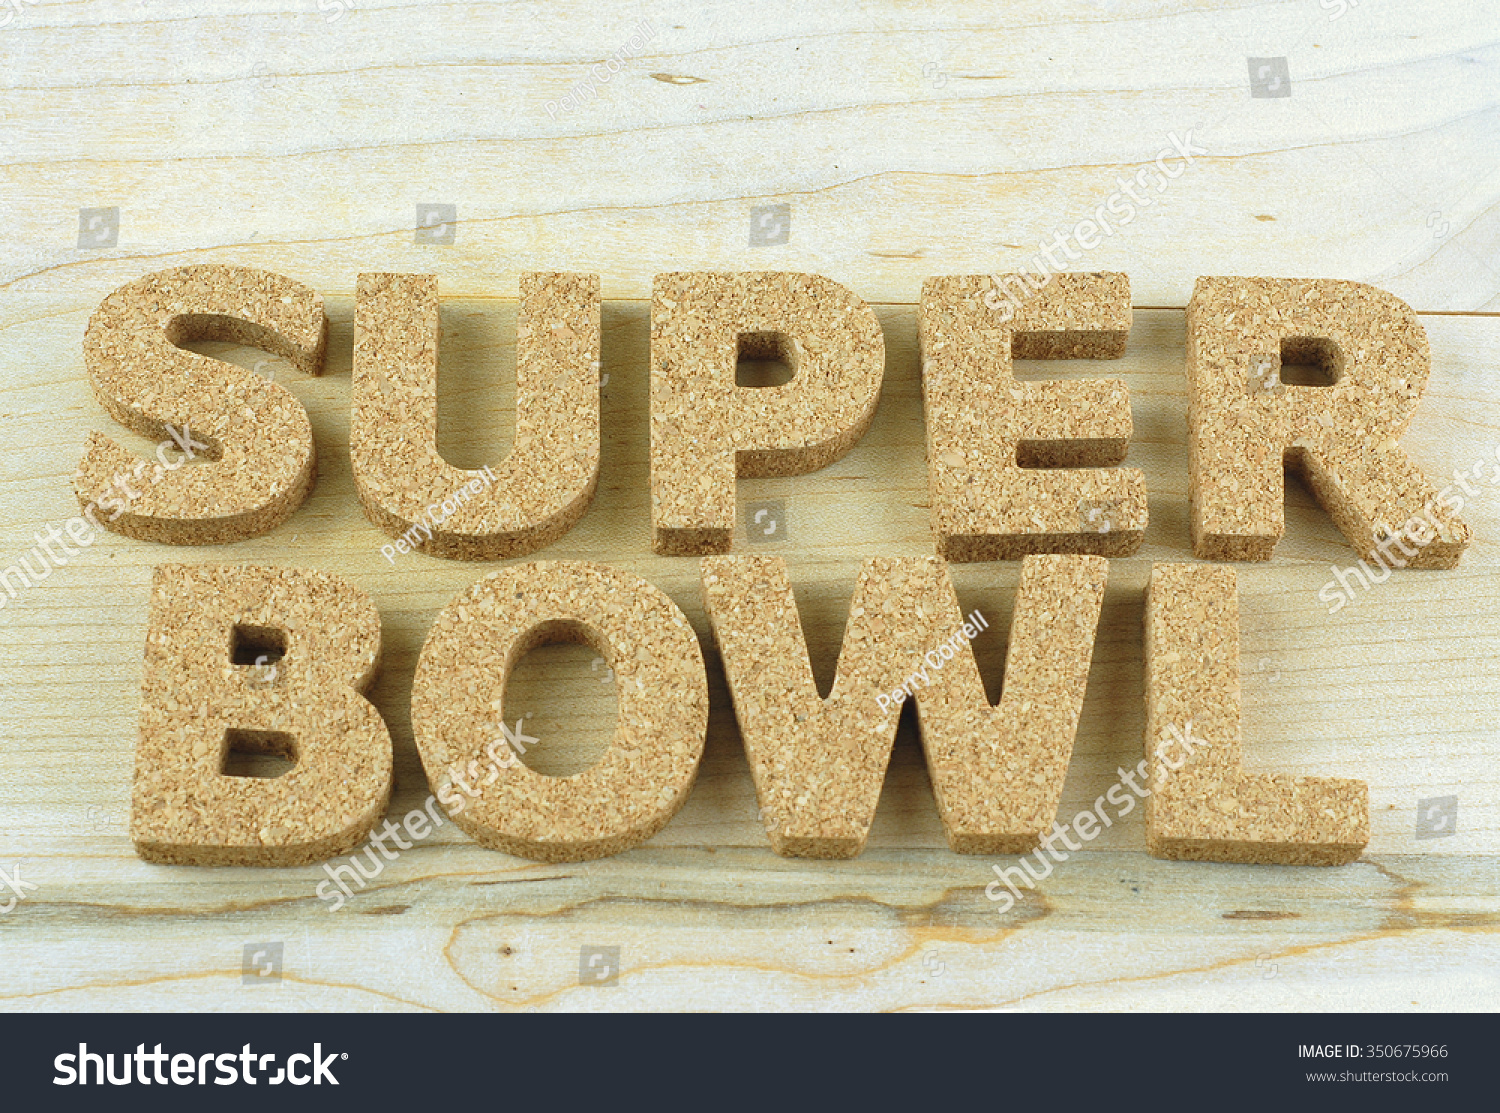 Nfl Football Theme With Block Letters Made Out Of Cork On